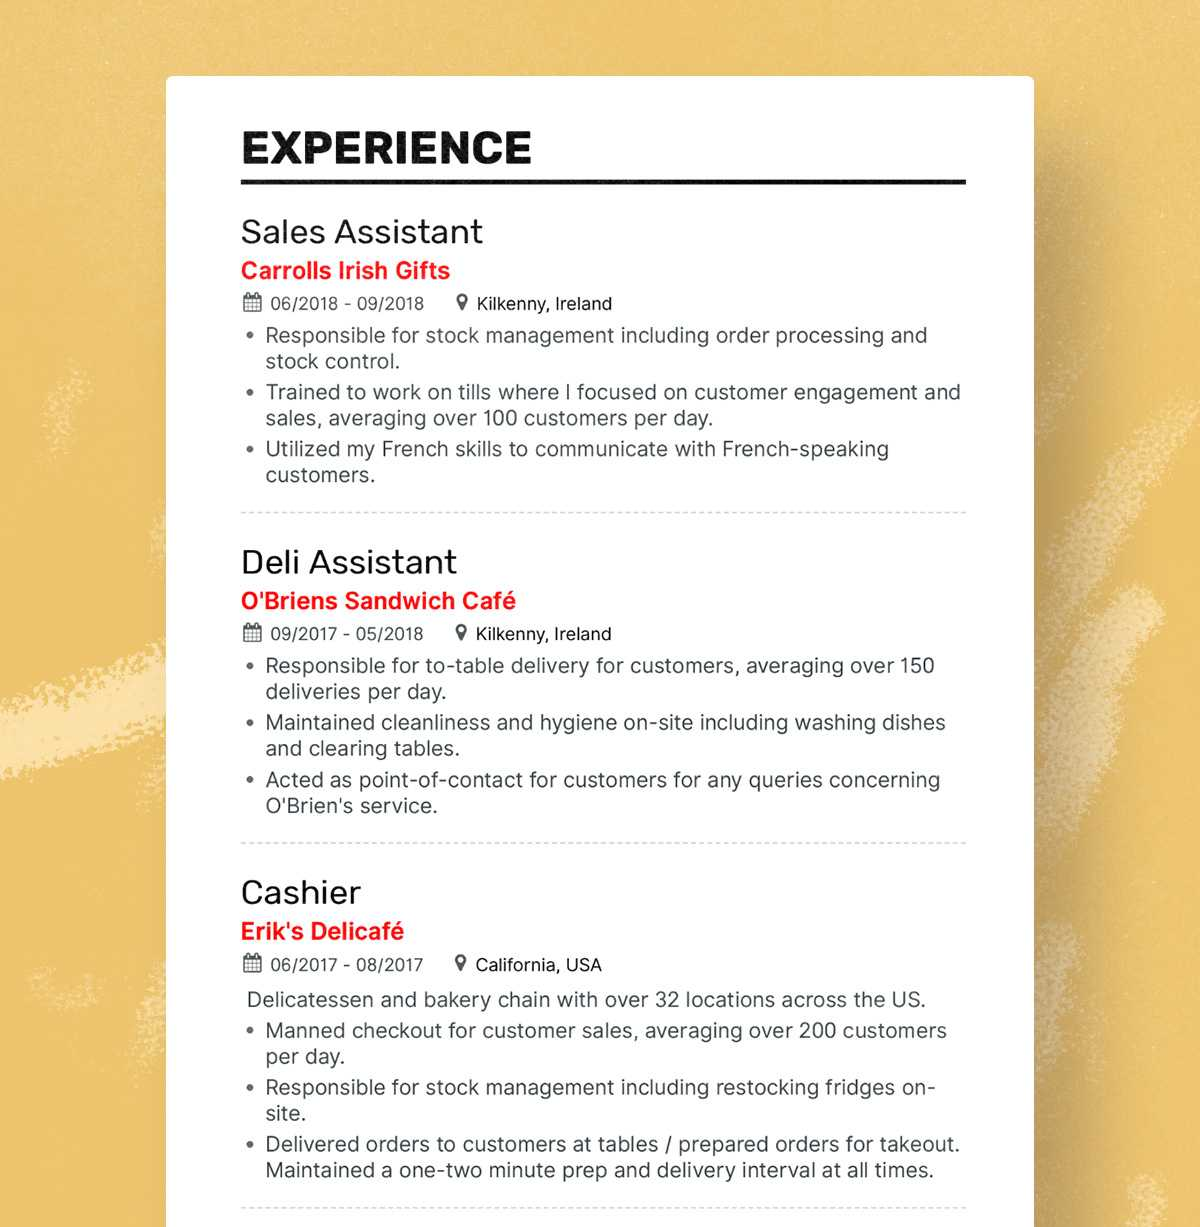 Retail resume experience section